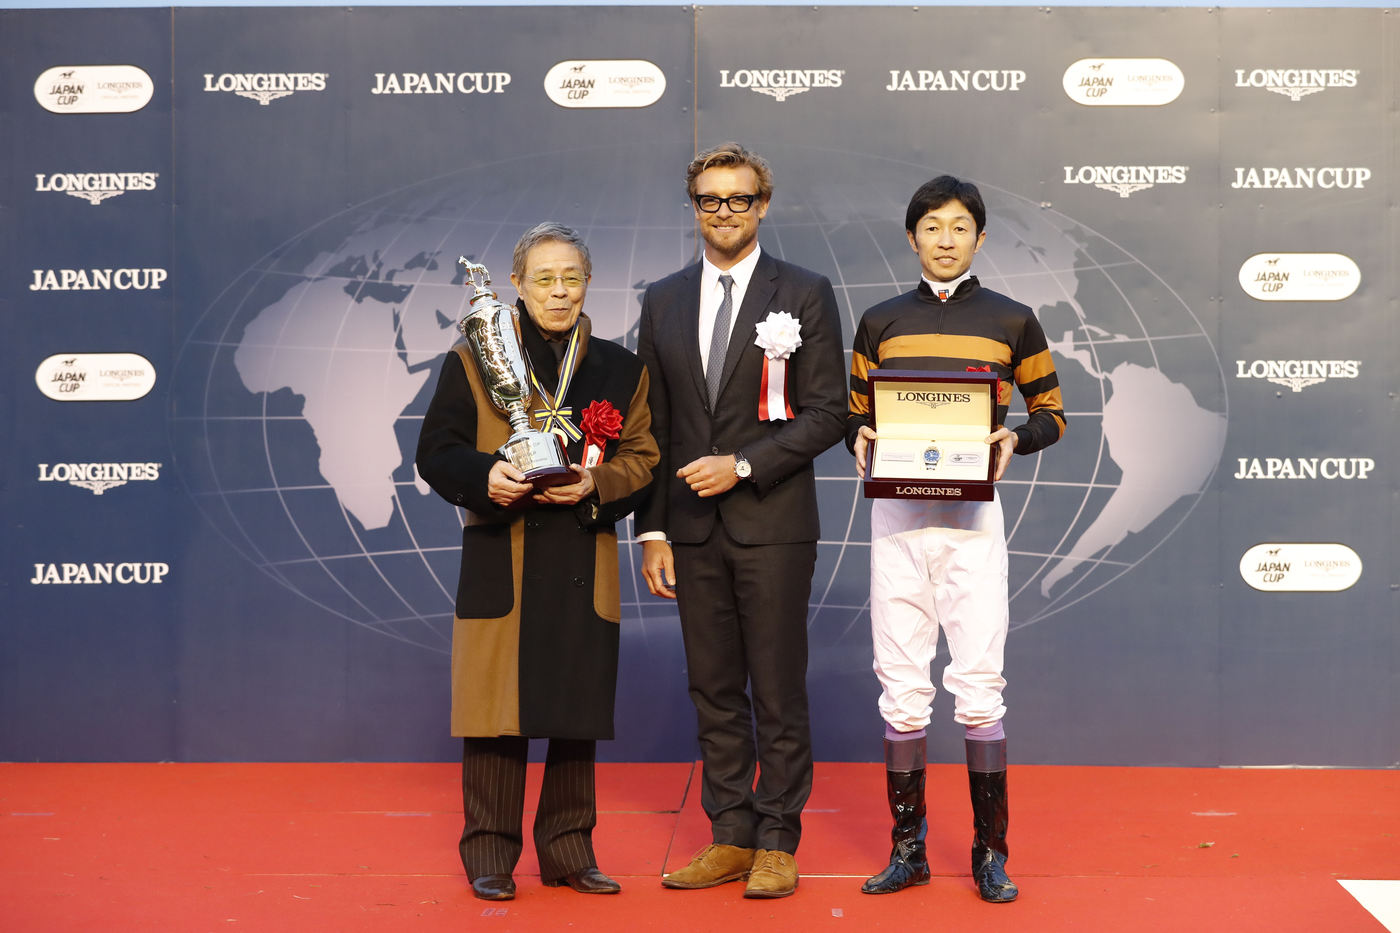 Longines Flat Racing Event: Kitasan Black and Yutaka Take caught the spotlight at 2016 Japan Cup in association with Longines  3